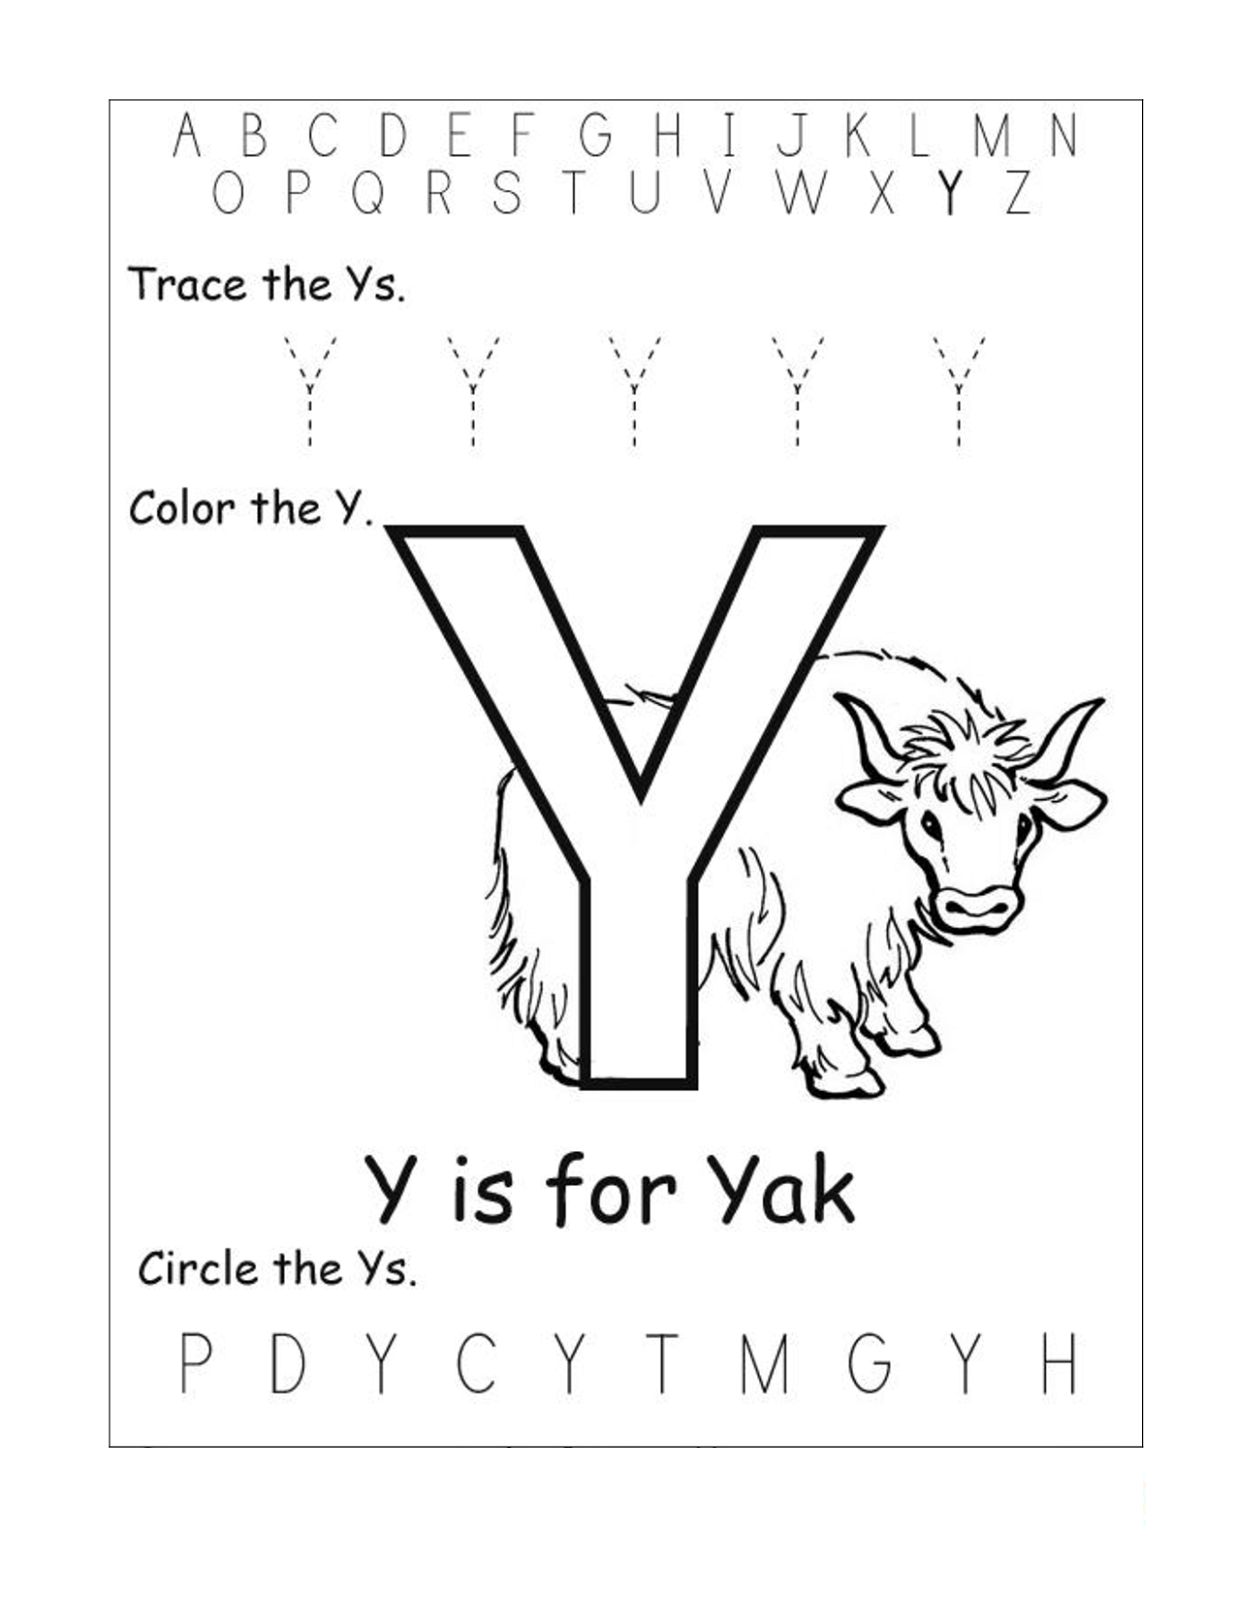 worksheet Letter W Worksheets For Preschool letter y worksheets to print activity shelter worksheet yak